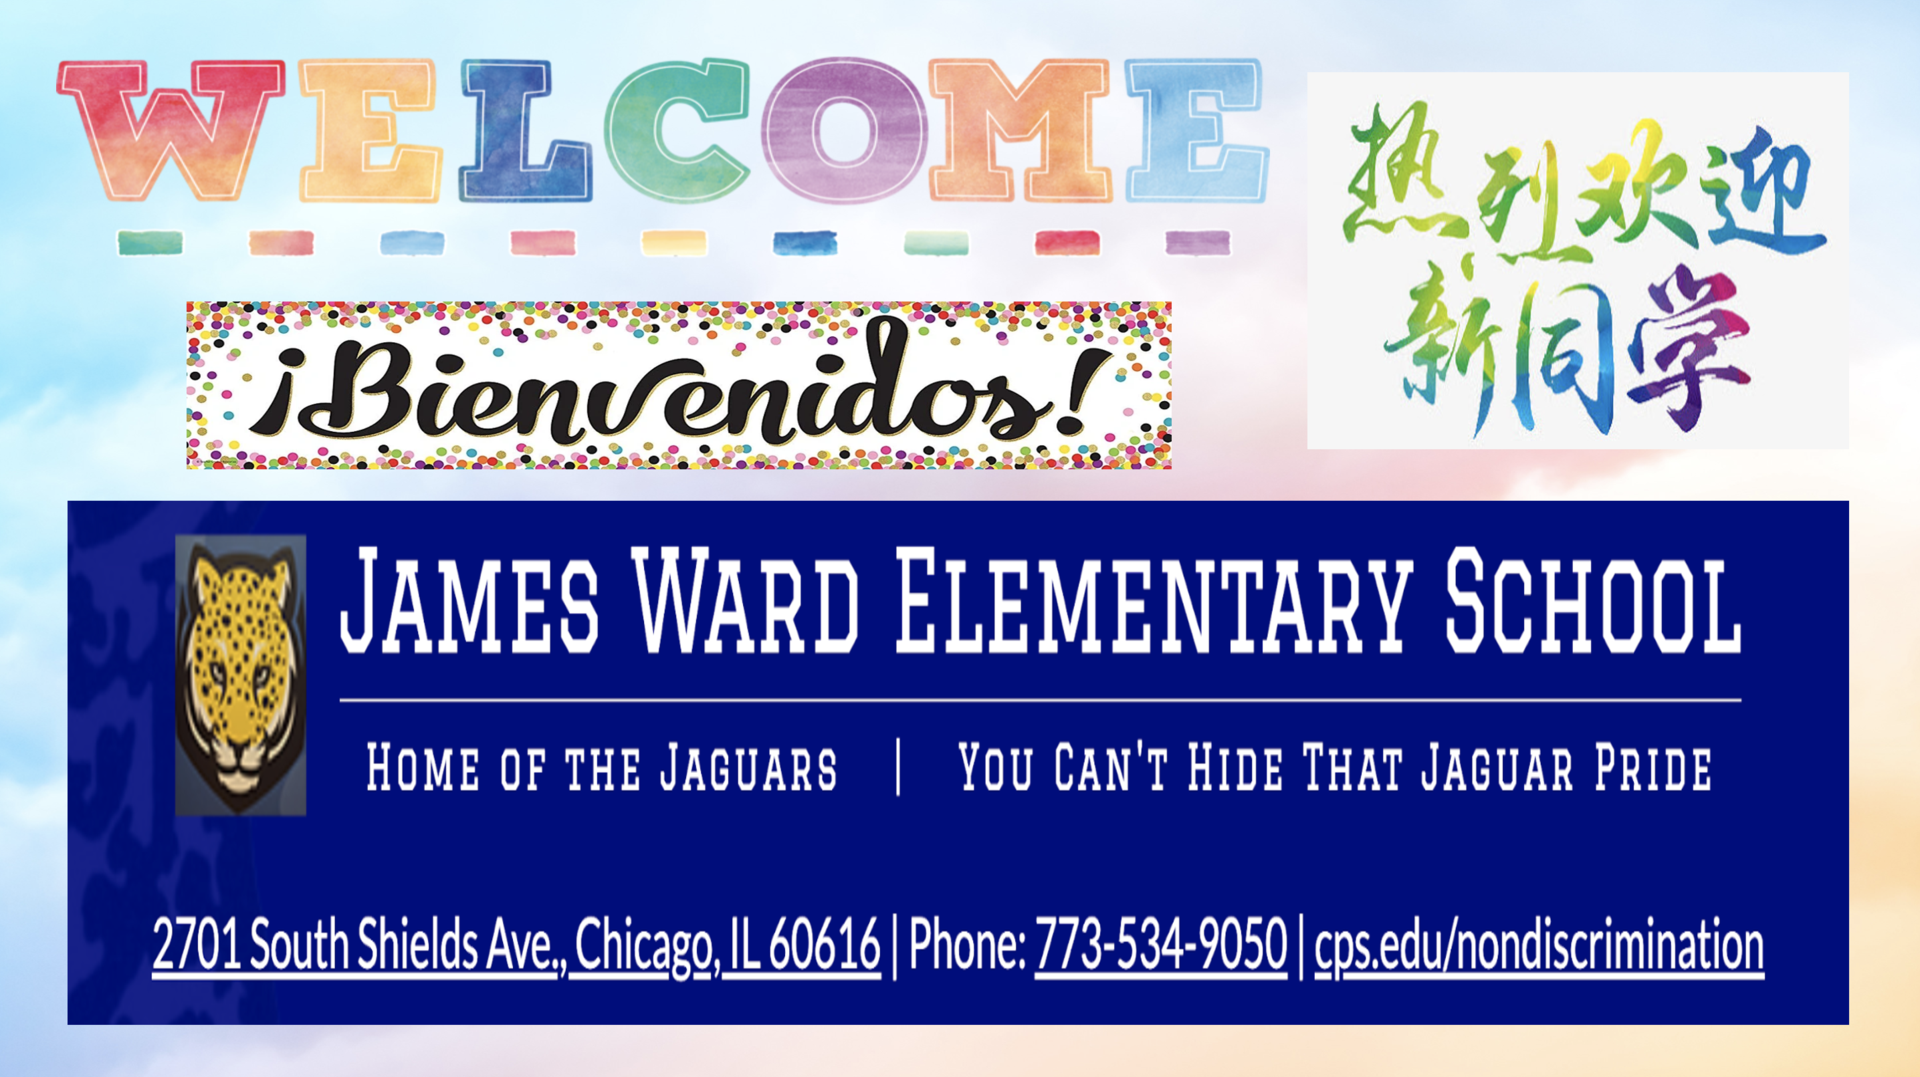 Welcome to James Ward Elementary School!